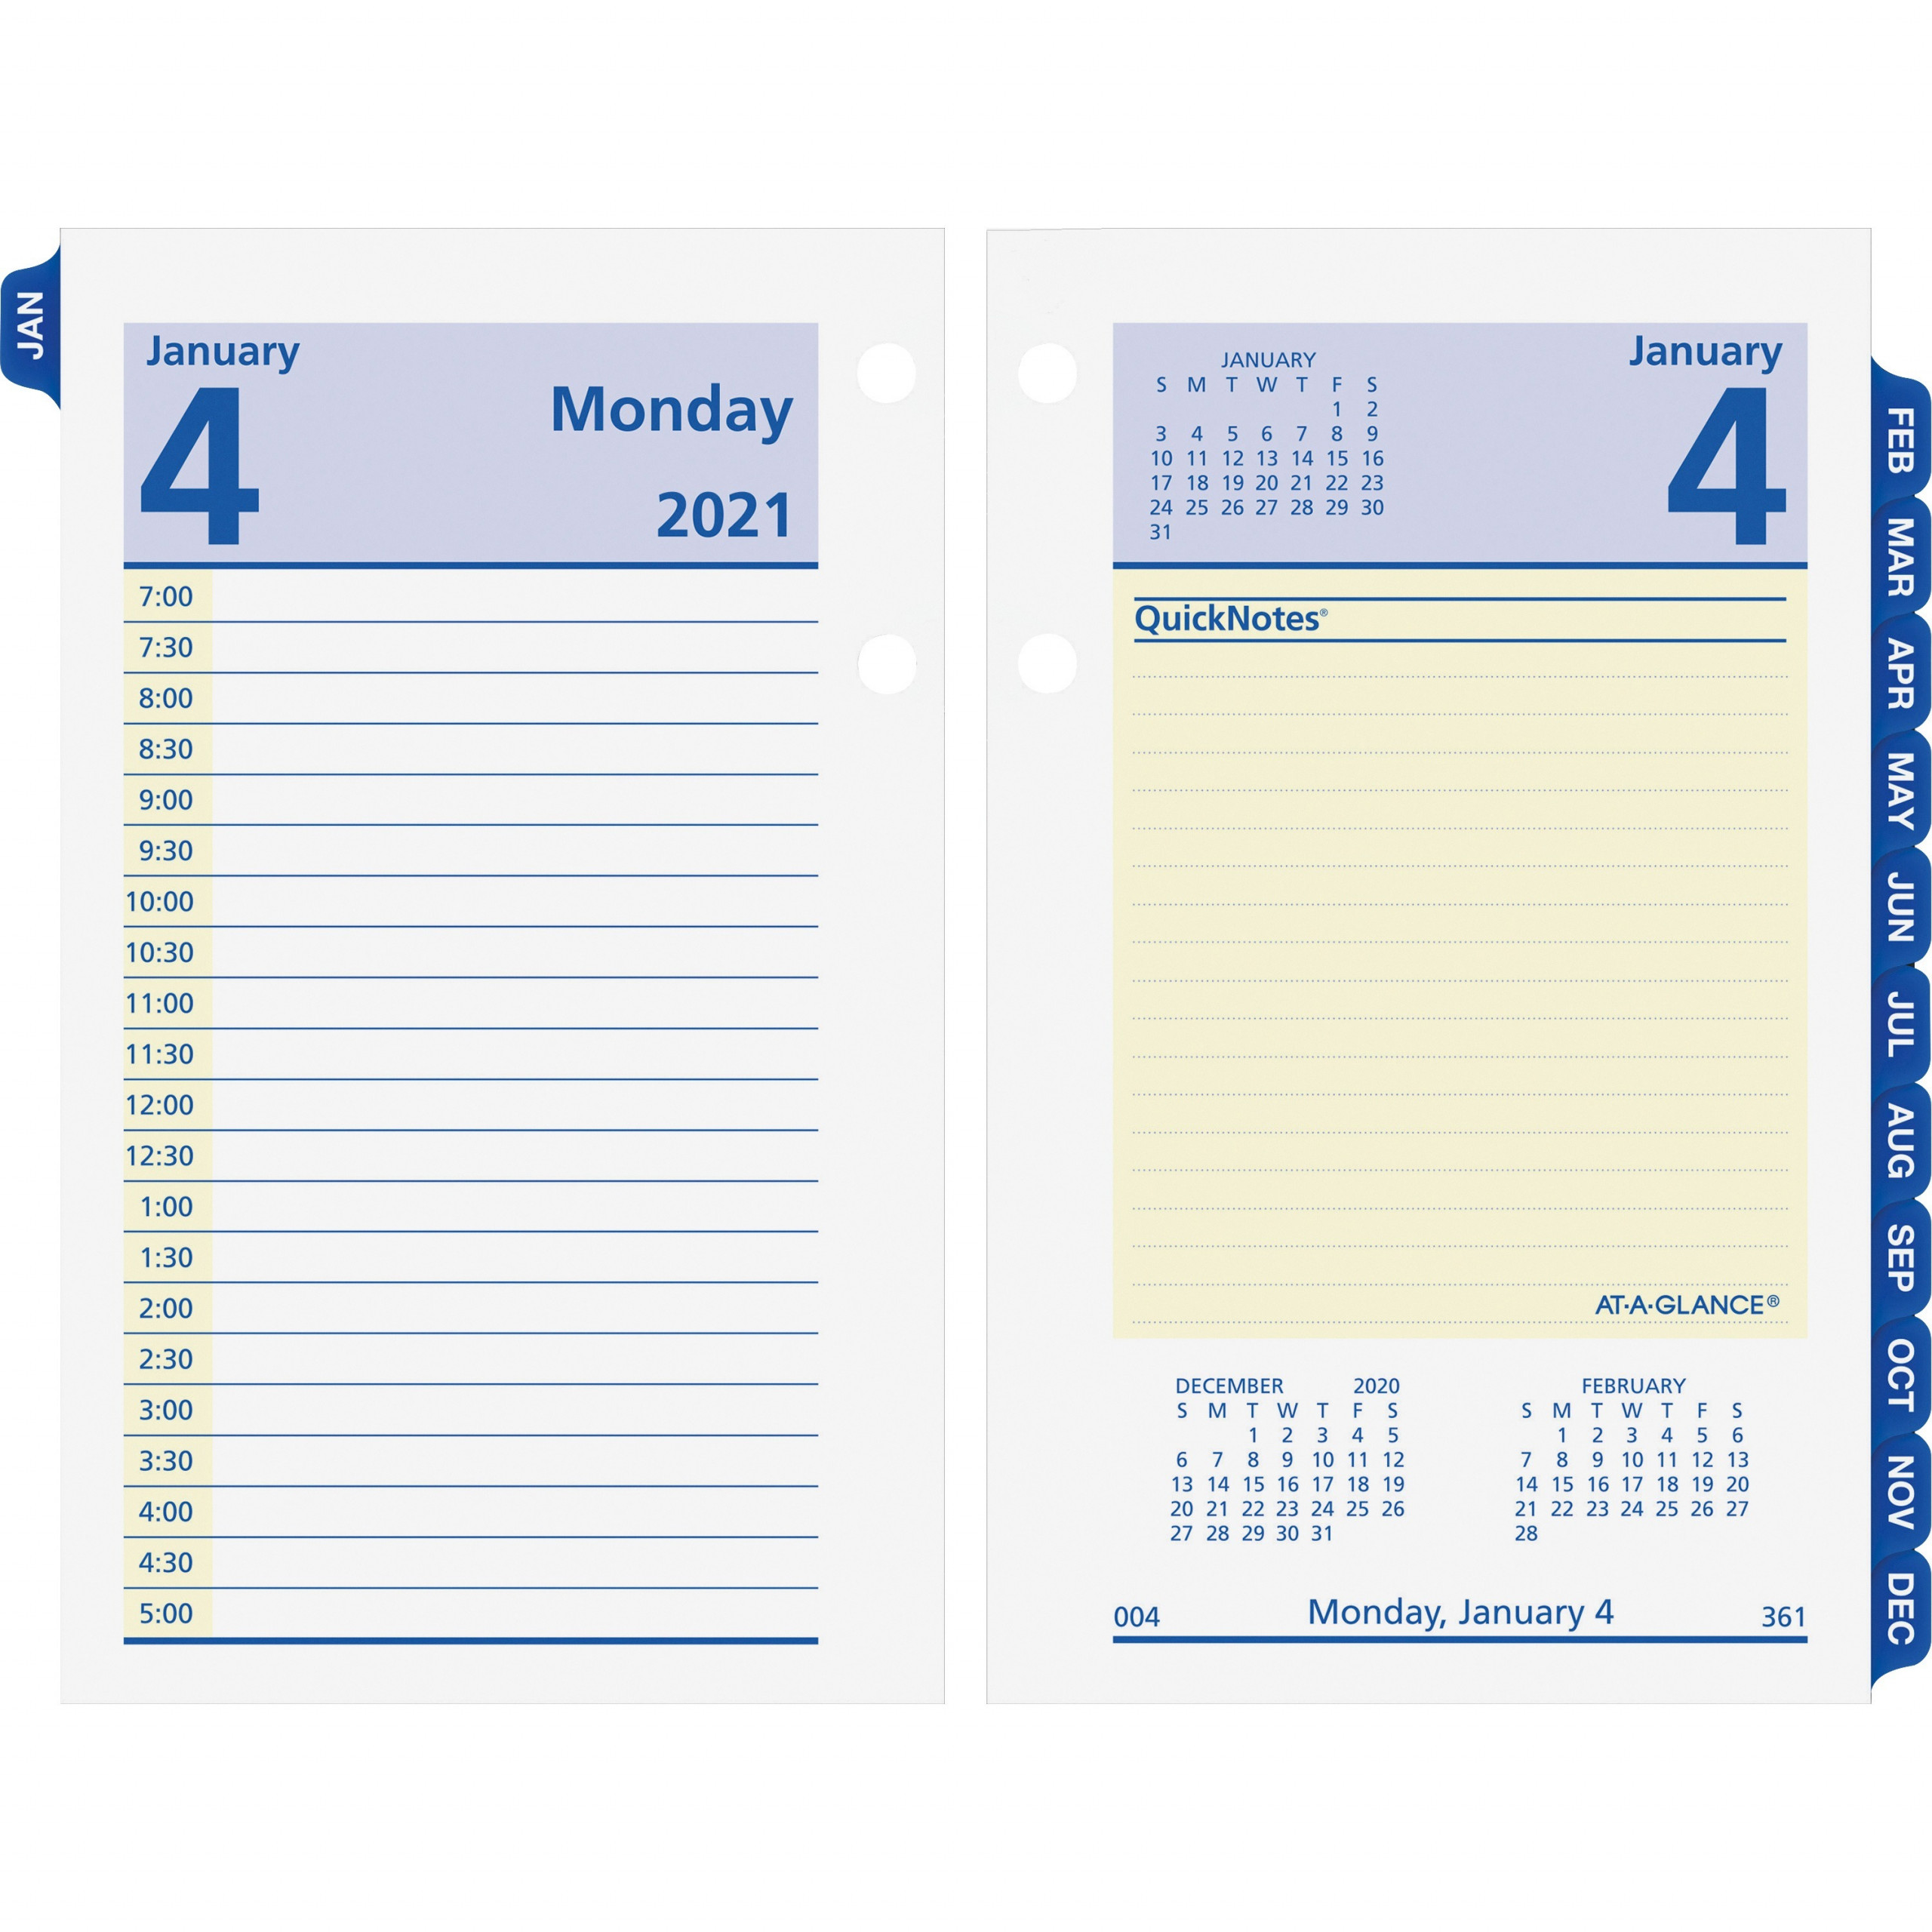 At A Glance QuickNotes Daily Desk Calendar Refill Julian Dates Daily January 2021 till December 2021 7 00 AM to 5 00 PM Half hourly 1 Day AAGE x